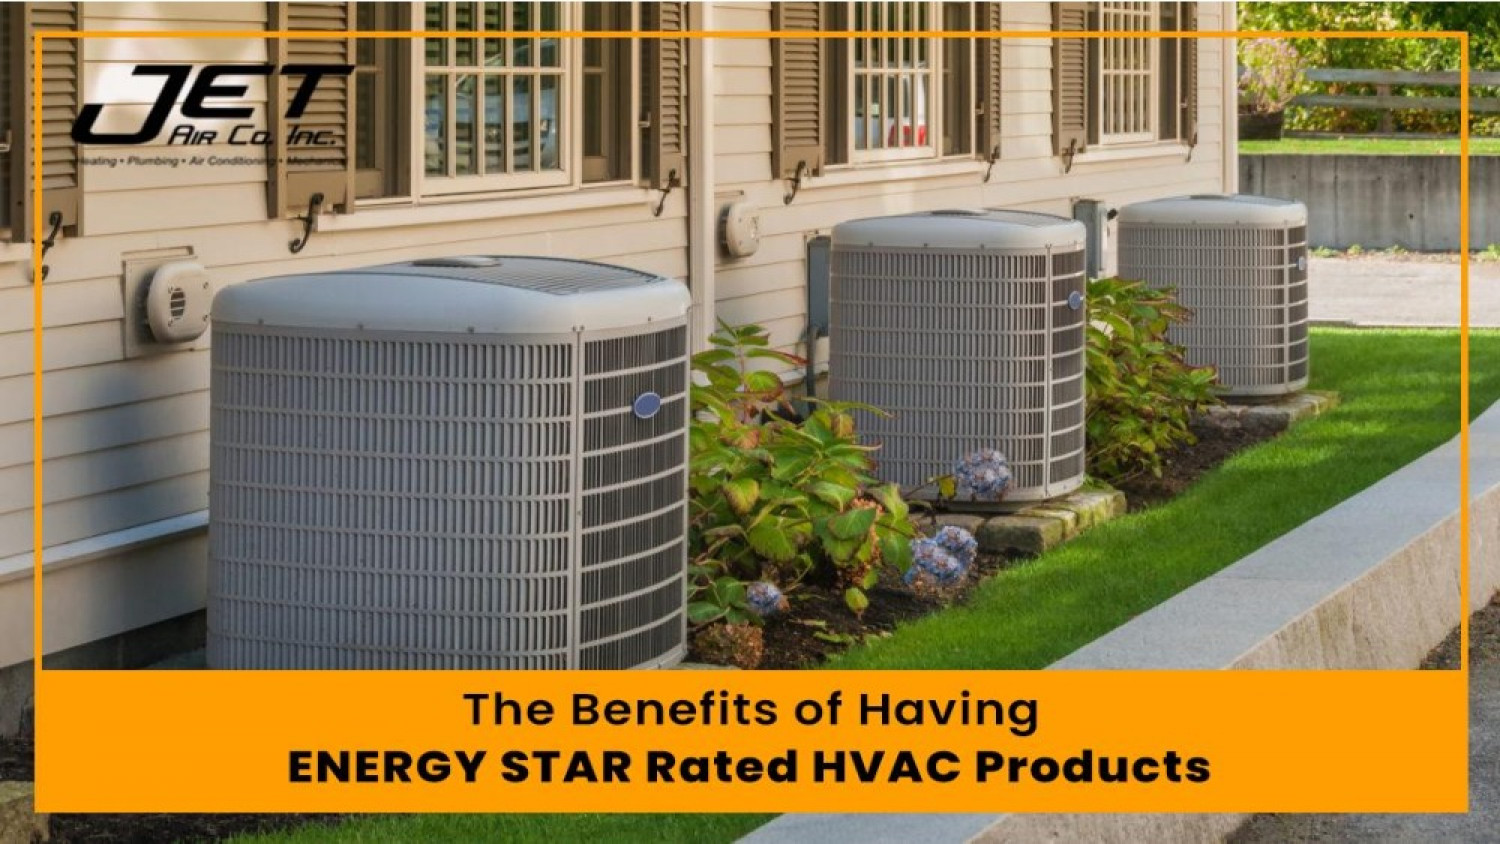 The Benefits of Having ENERGY STAR Rated HVAC Products Infographic